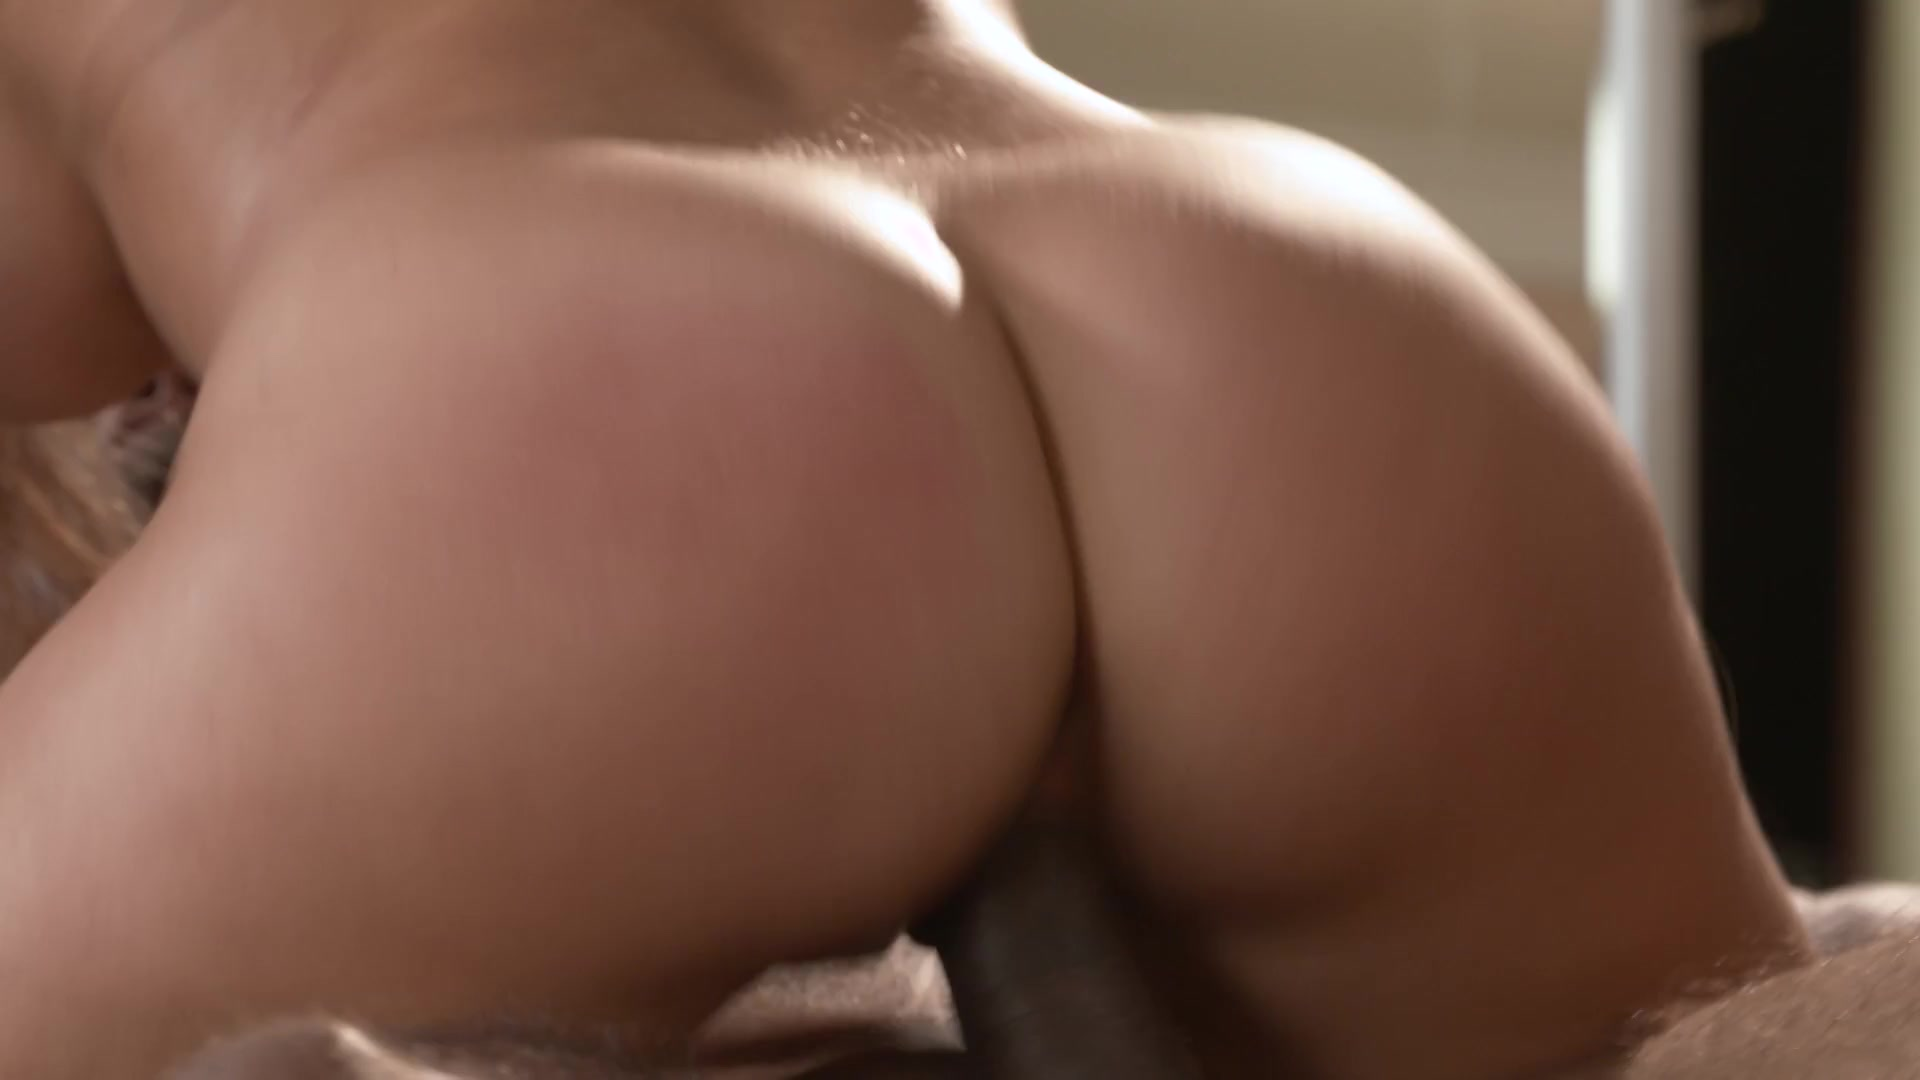 Horny MILFs and Cougars on the Prowl